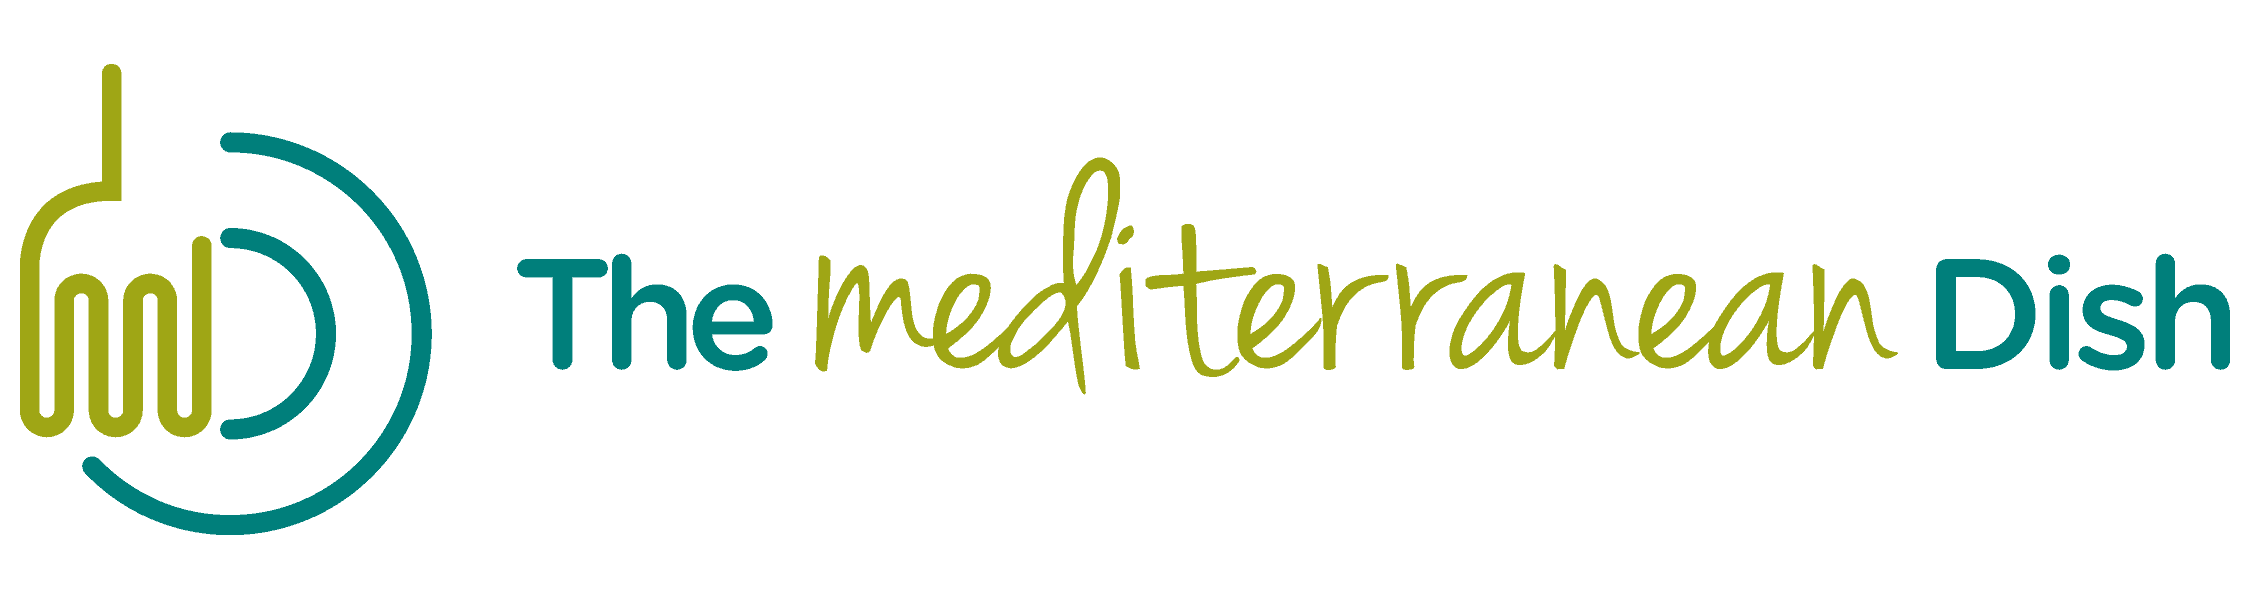 The Mediterranean Dish logo